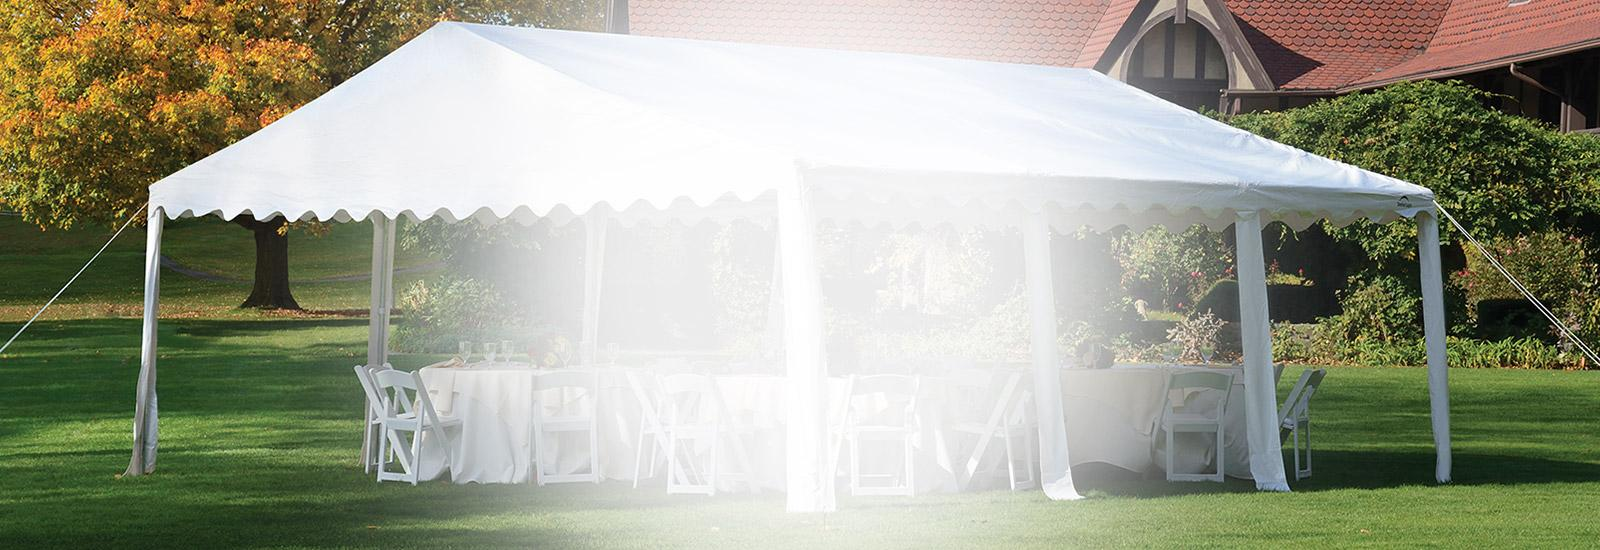 Party Tent Homepage Banner Background